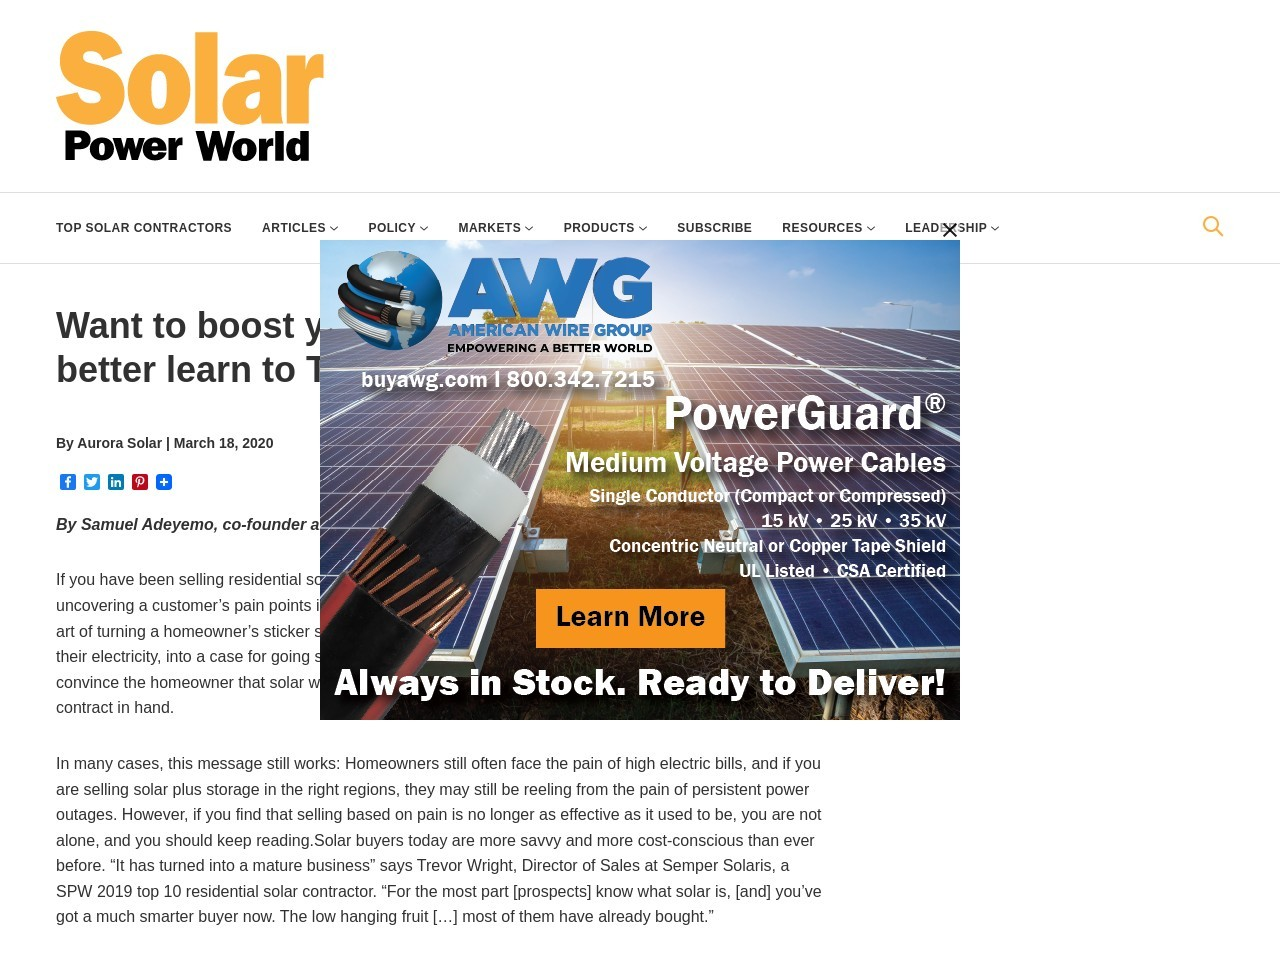 Want to boost your solar sales in 2020? You better learn to TALC